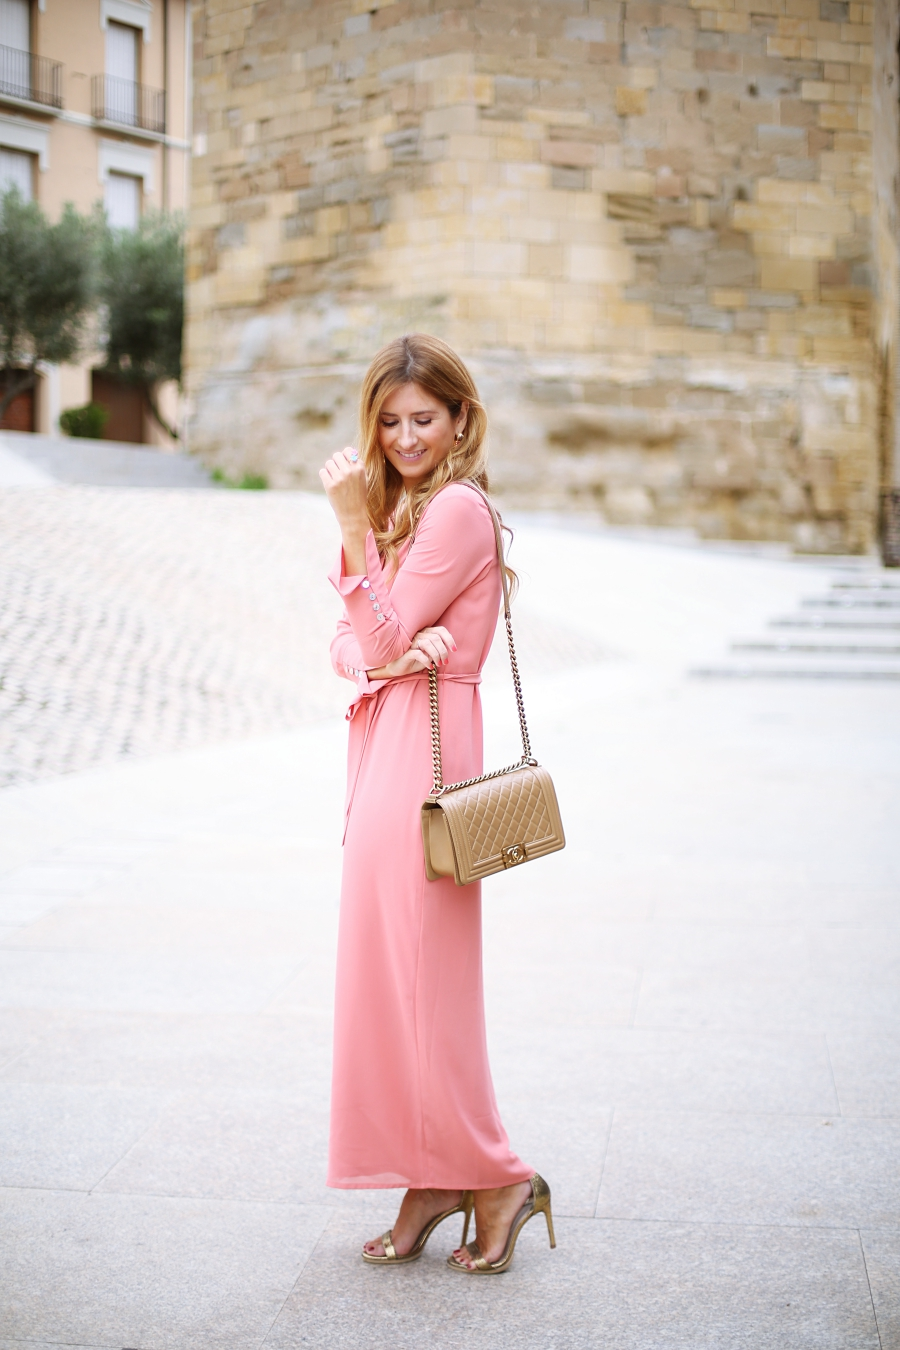 PINK DRESS AND PERFECT MAKE UP   A TRENDY LIFE   Bloglovin\'